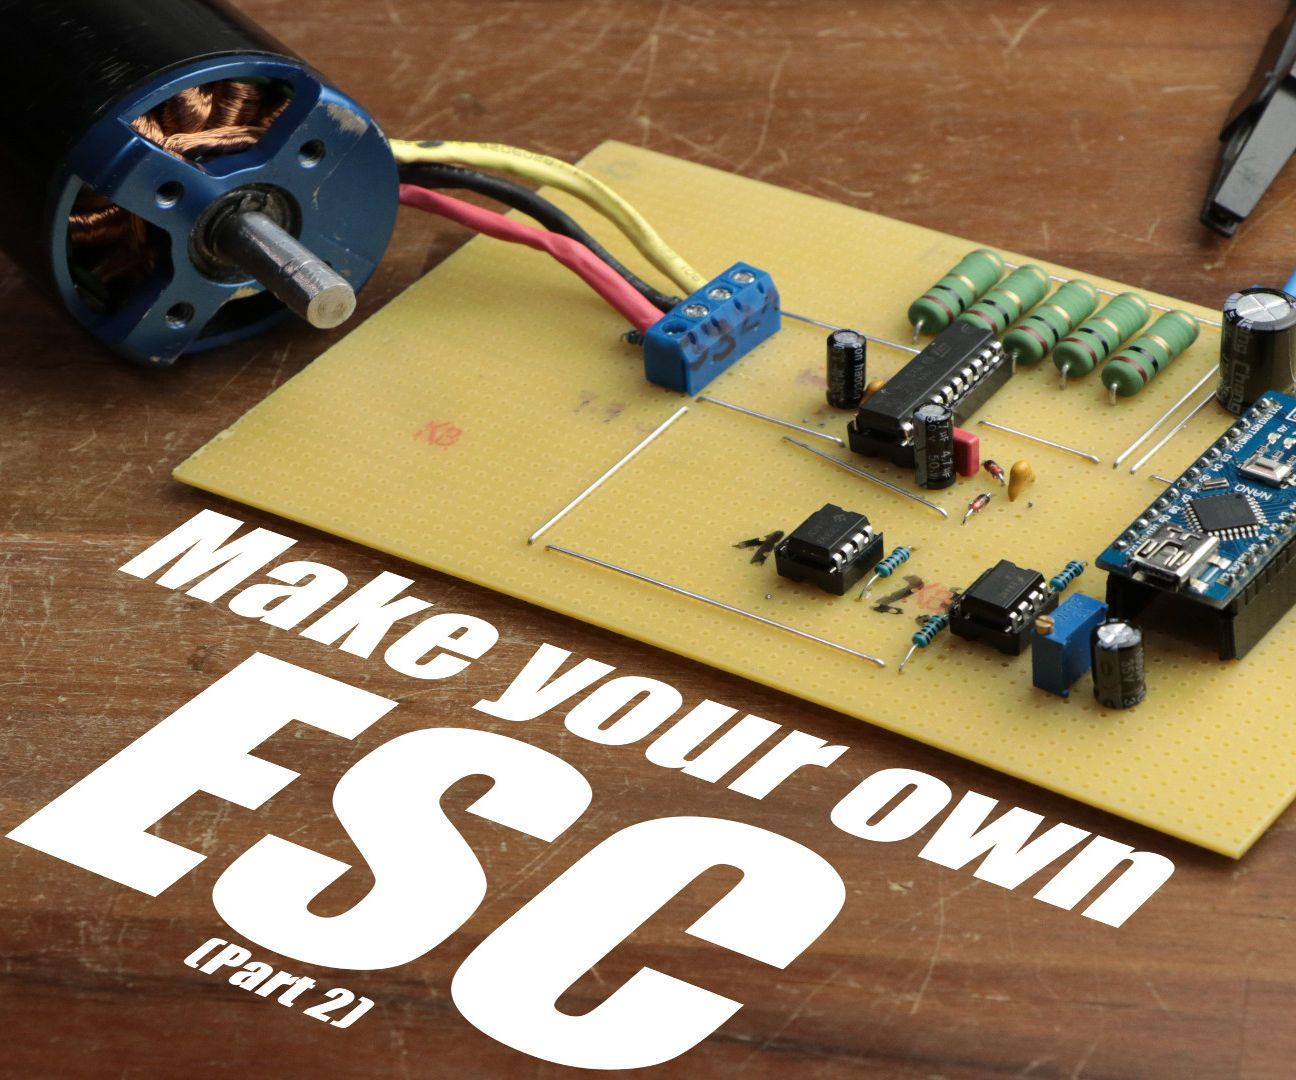 Make Your Own ESC | Arduino, Electronics projects and Computer projects